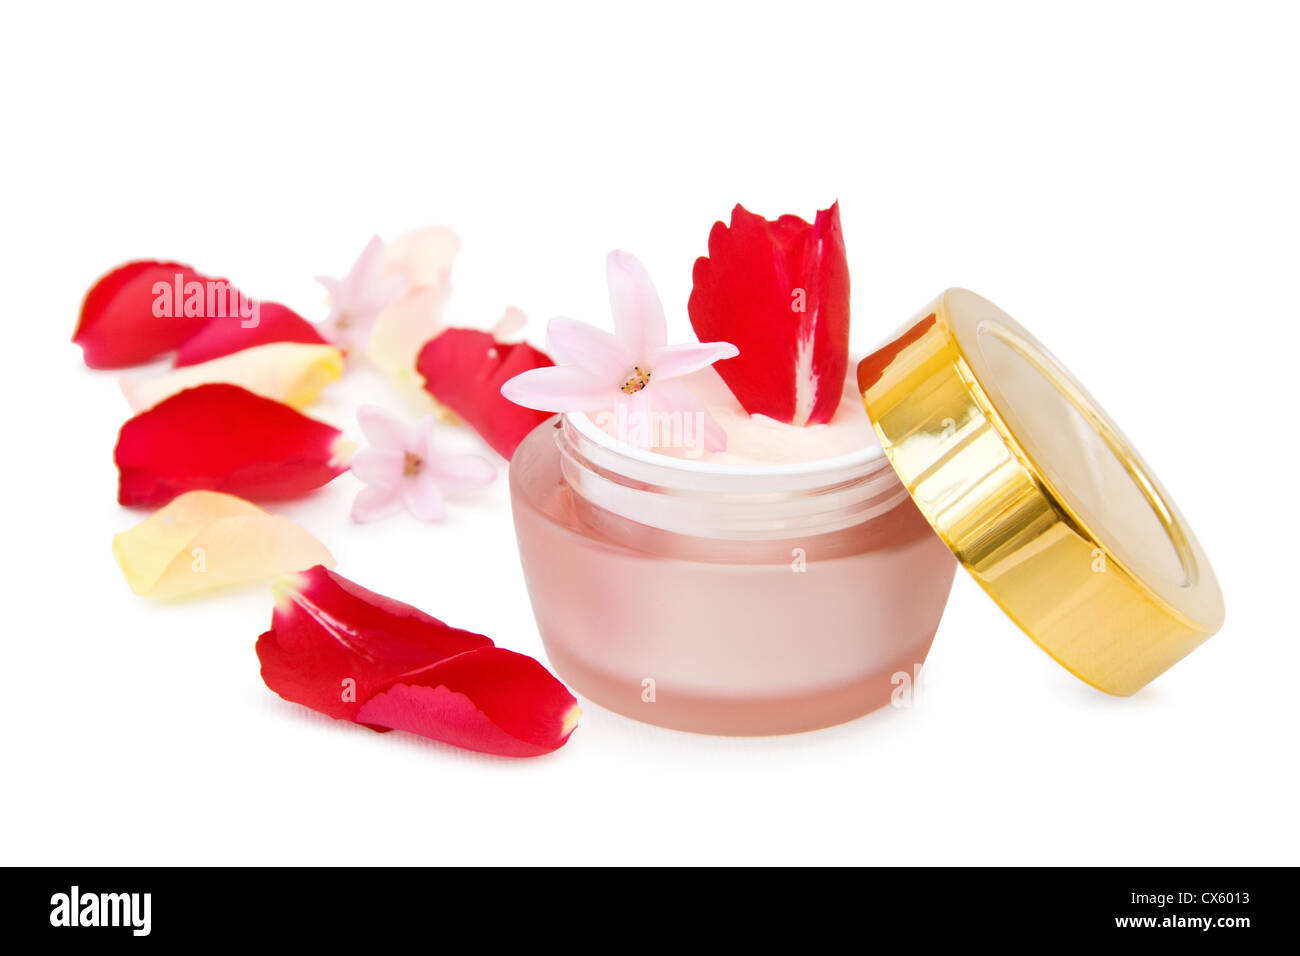 Natural face cream with roses. Isolated over white background. - Stock Image